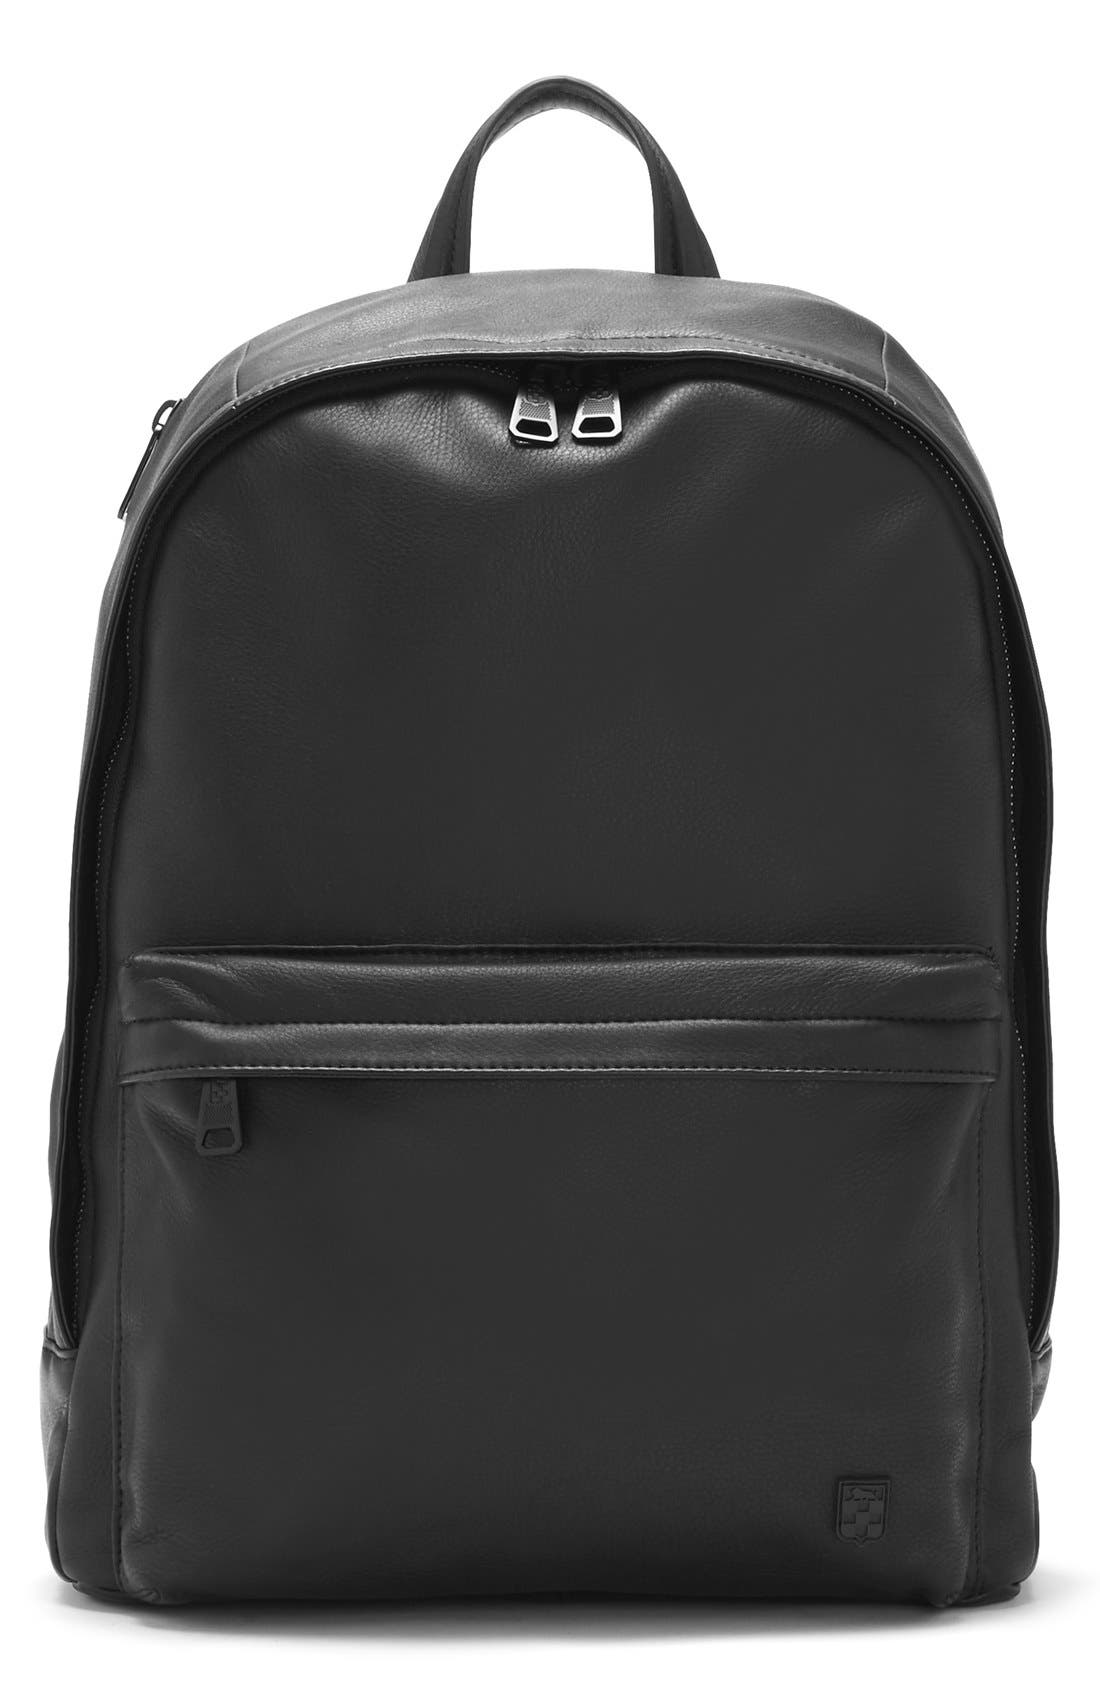 'Tolve' Leather Backpack,                         Main,                         color, 001